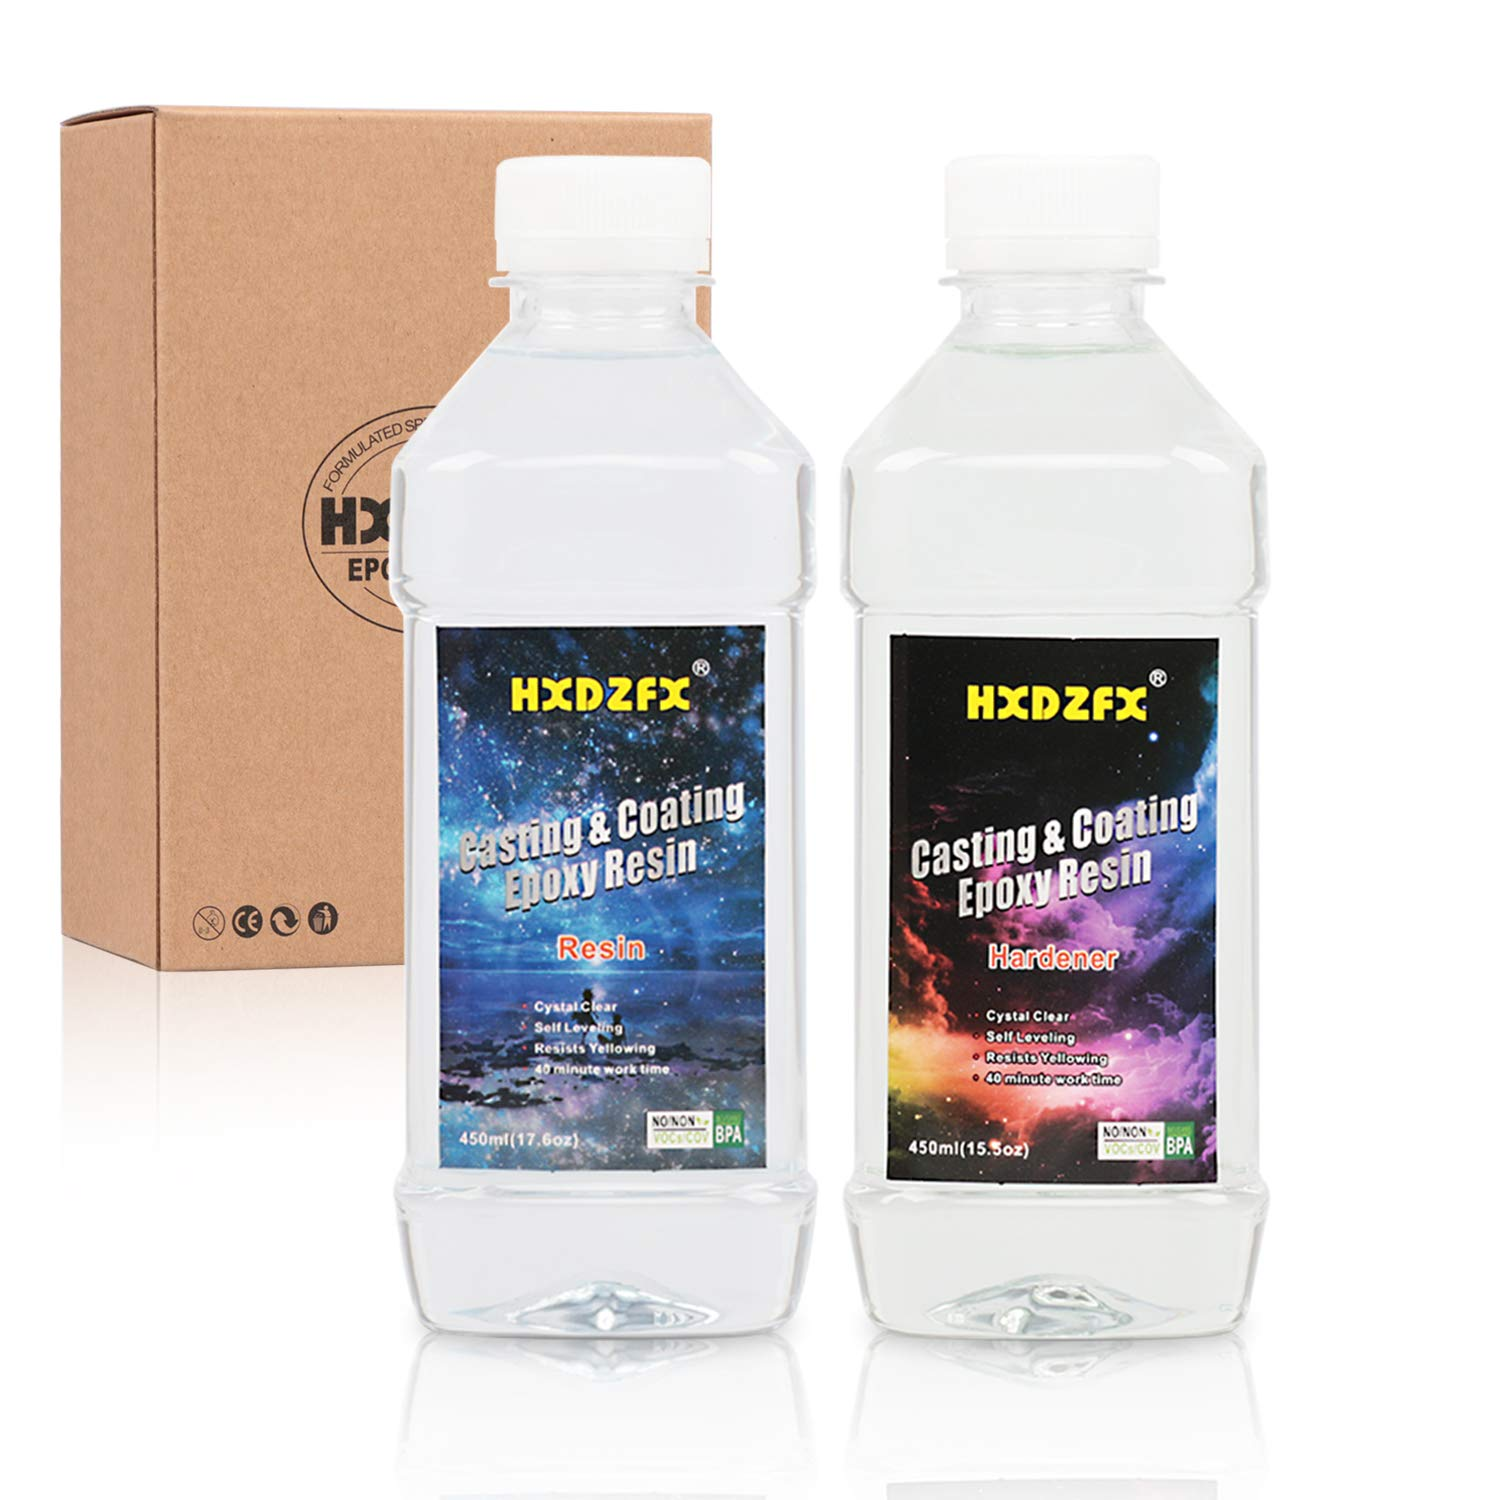 HXDZFX Epoxy Resin Coating 33.1oz Kit Crystal Clear Resin, for Table Tops, Bars, Wood finishes, See Through Encapsulations, Art Work (33.1oz)